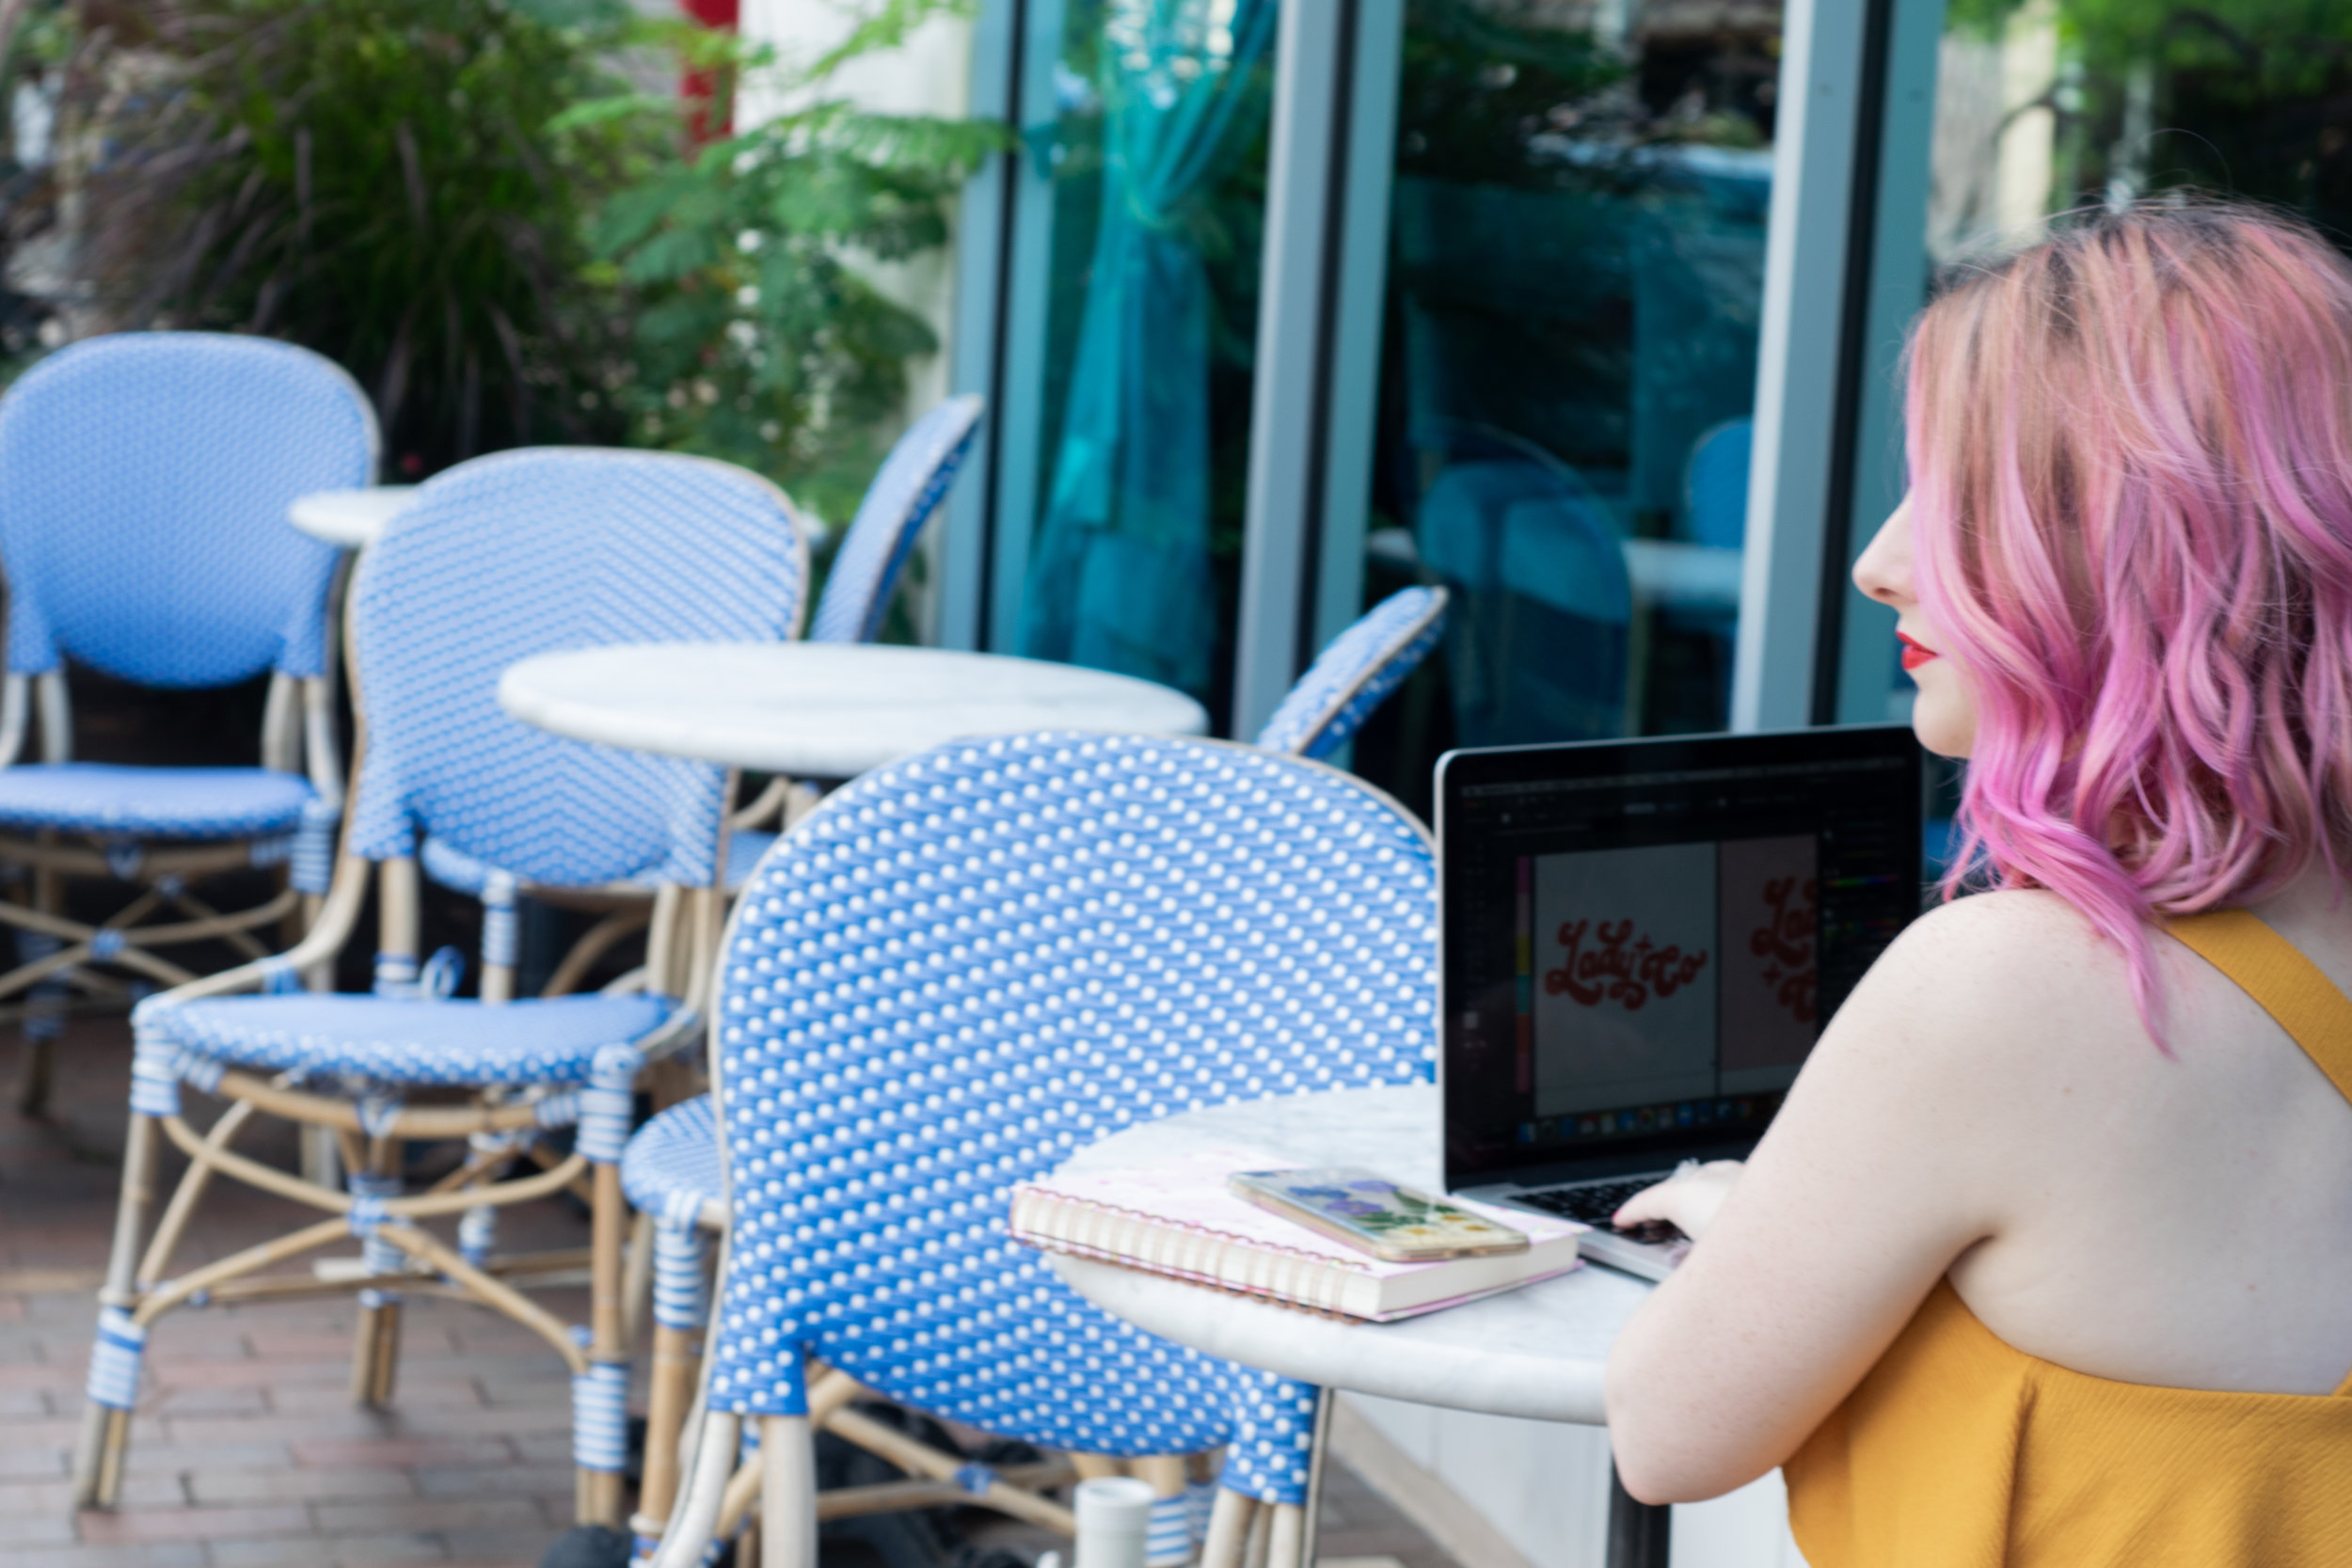 Lady and Company owner Alex Lawless sits in front of a computer at the restaurant